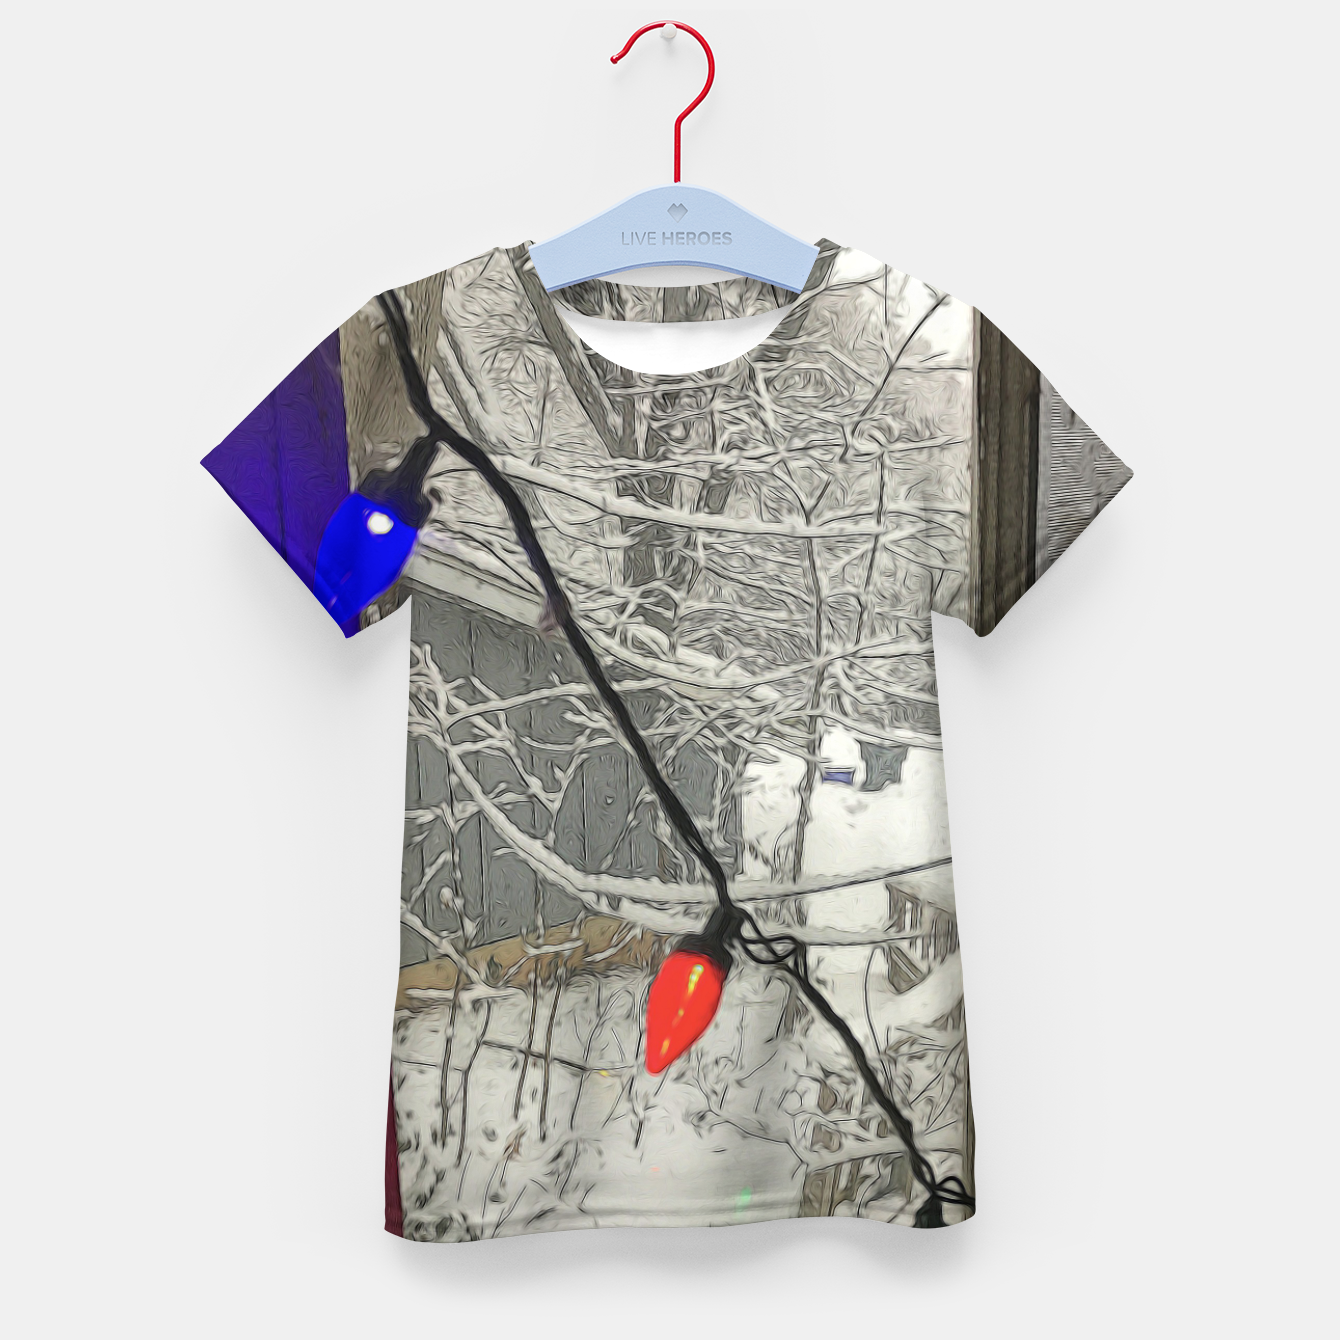 Imagen de Home For The Holidays Kid's t-shirt - Live Heroes